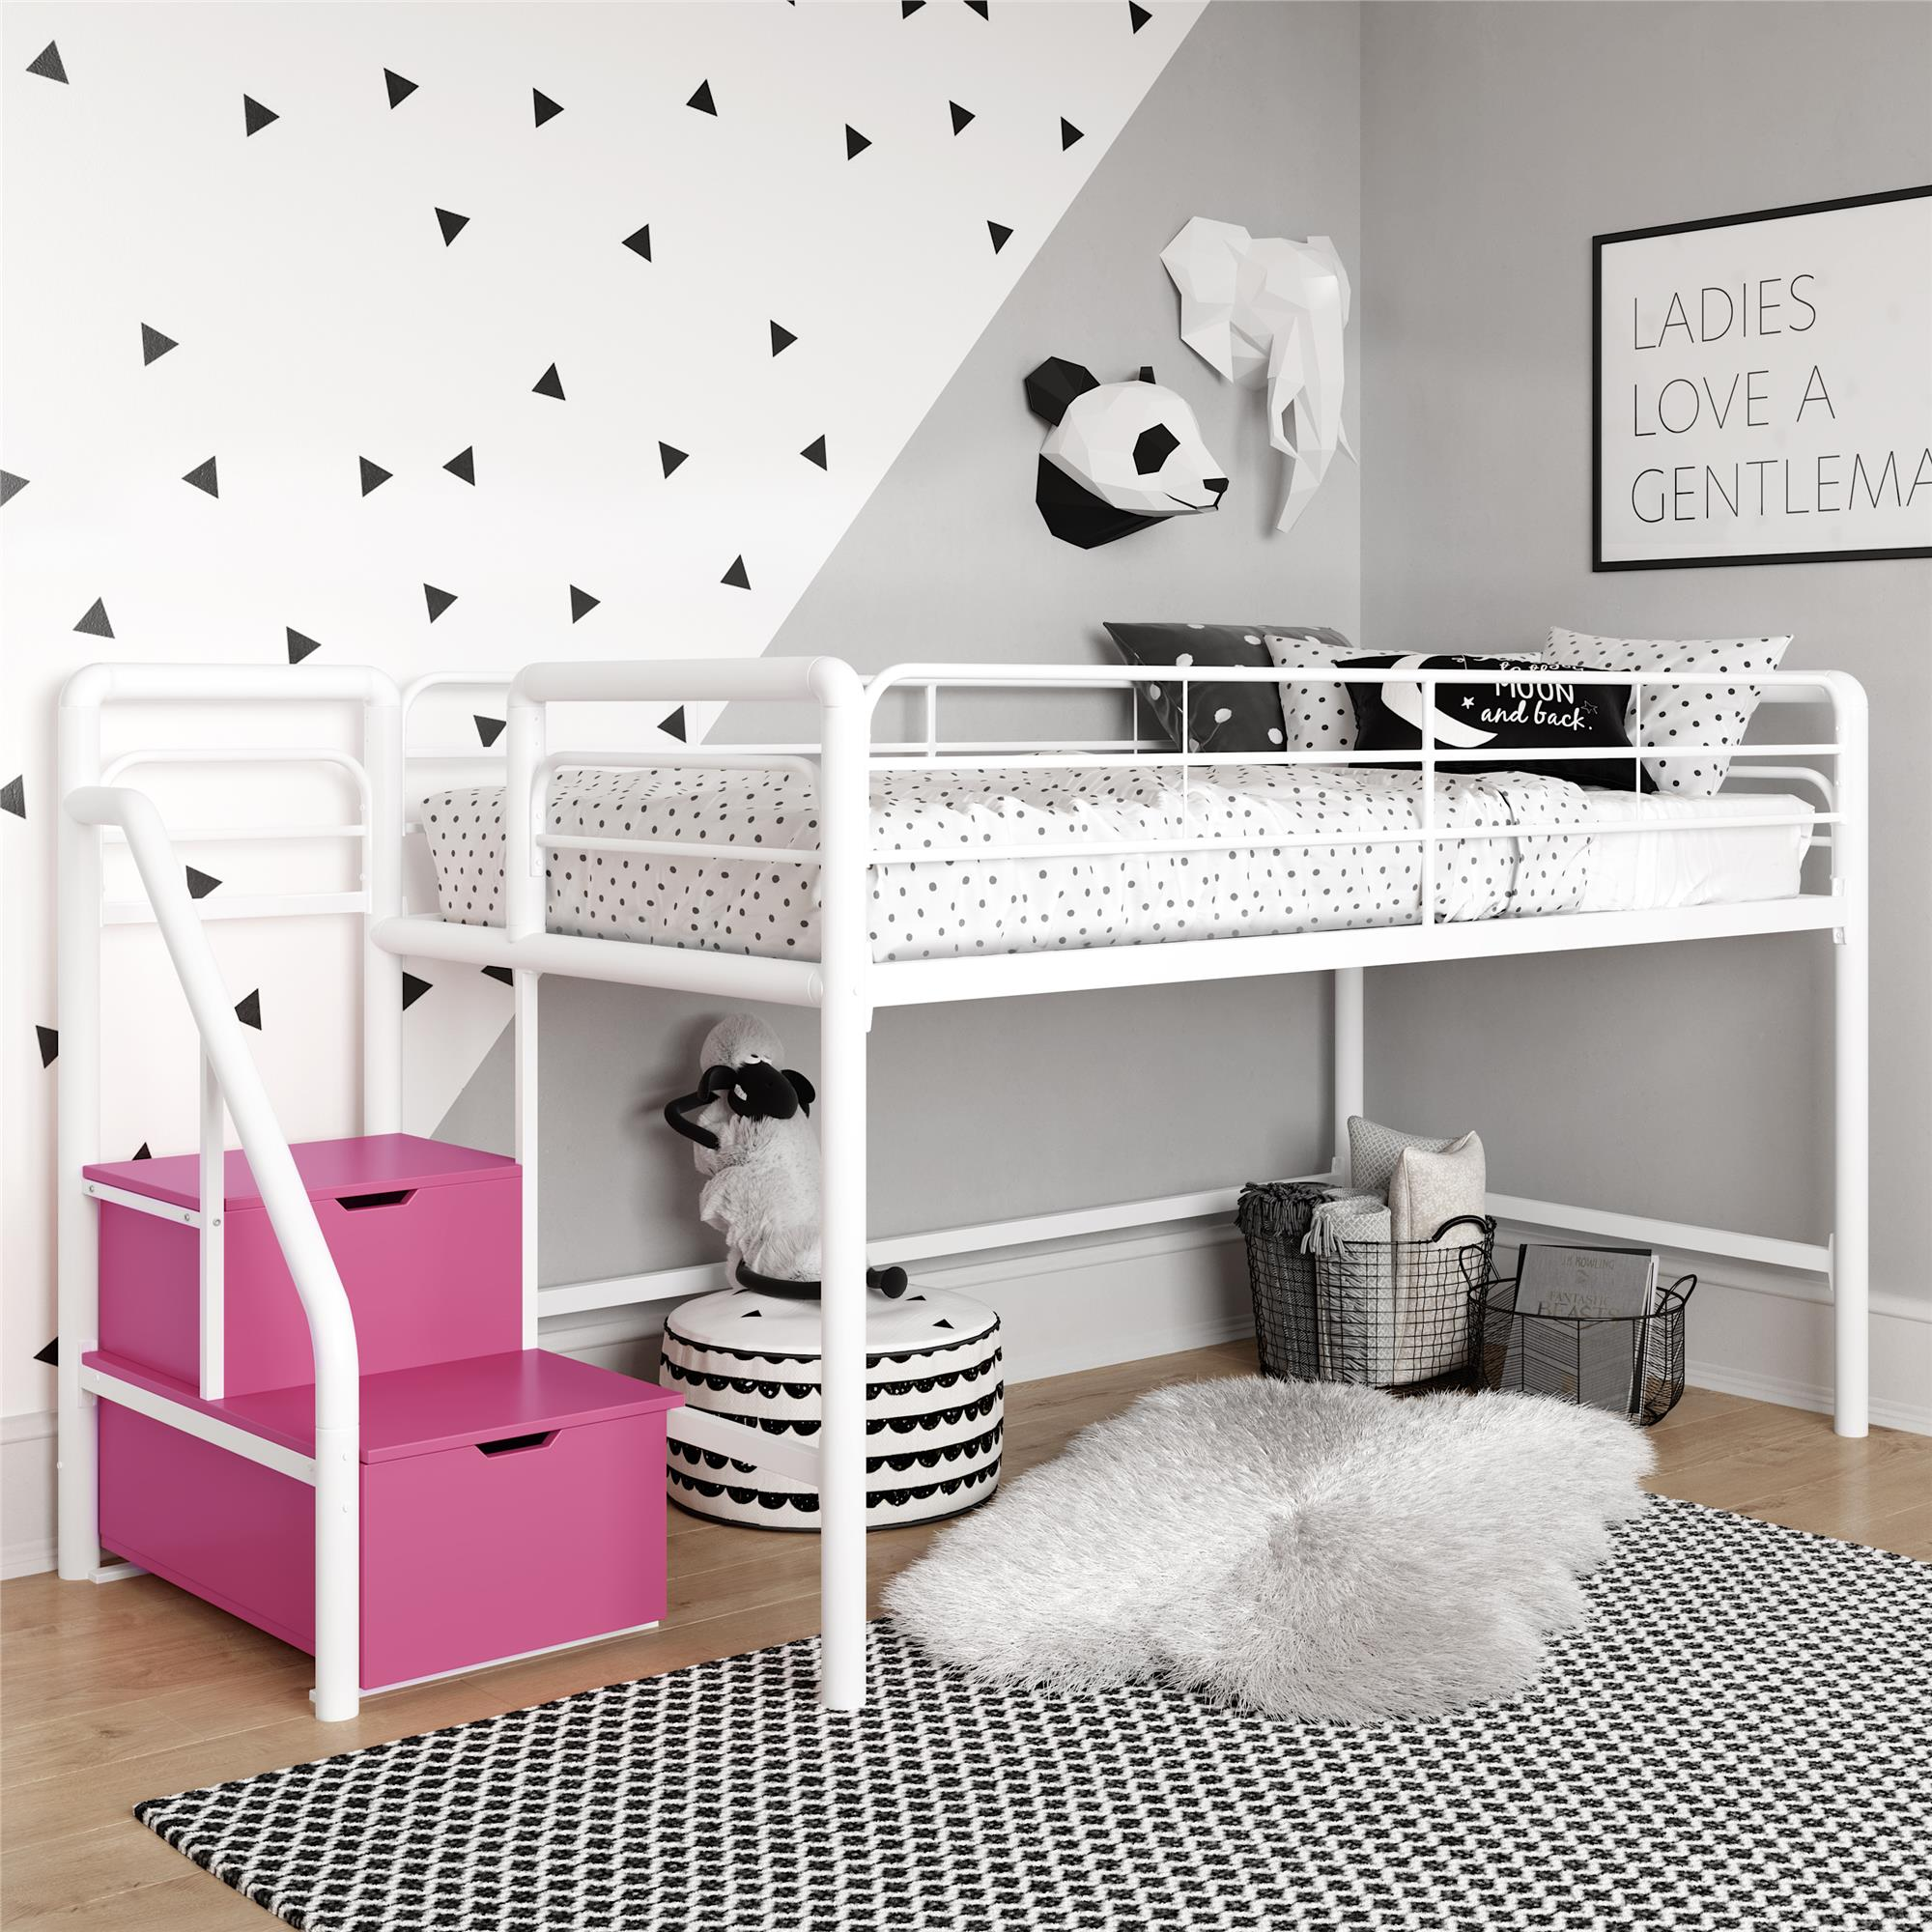 Image of: Junior Twin Loft Bed With Storage Steps Pink And White Walmart Com Walmart Com